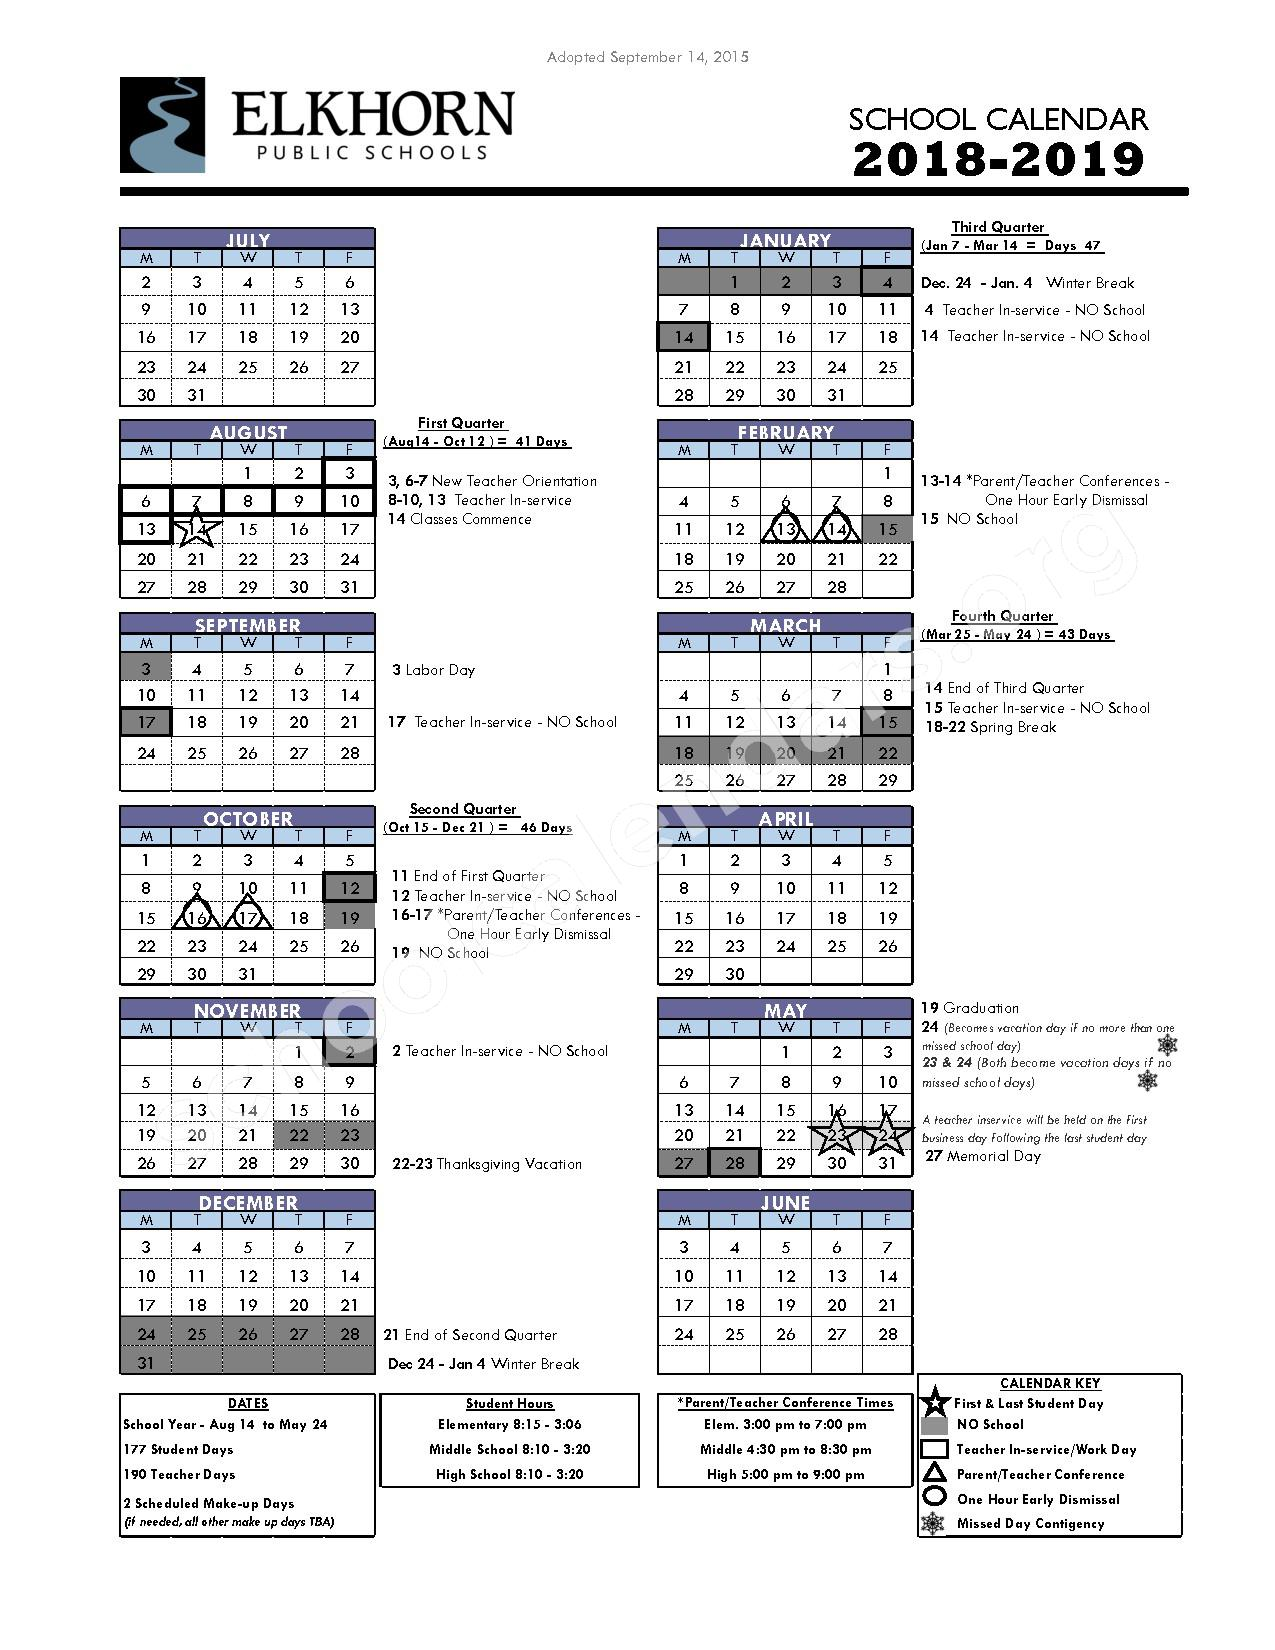 2018 - 2019 District Calendar – Elkhorn Public Schools – page 1